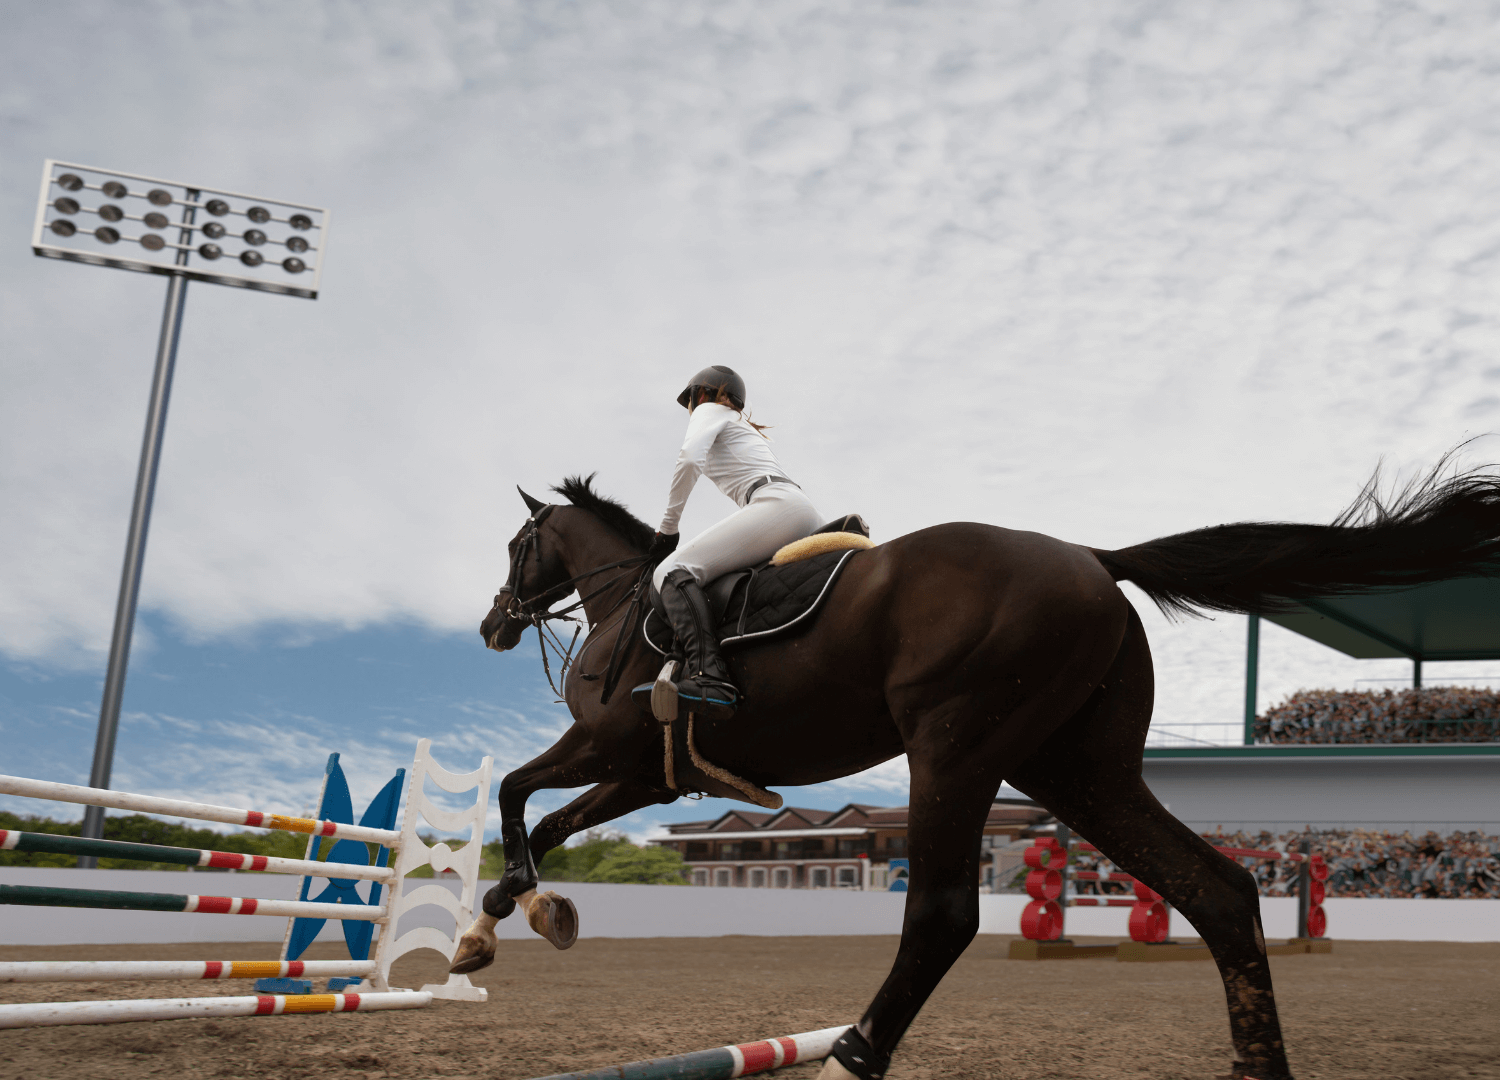 A horse gallops by with their rider holding on tight as they approach the obstacle in front of them. This could symbolize the confidence that comes from overcoming anxiety related to horseback riding. We offer anxiety therapy to help you overcome horse related trauma. Contact a trauma therapist today to learn more about trauma therapy.